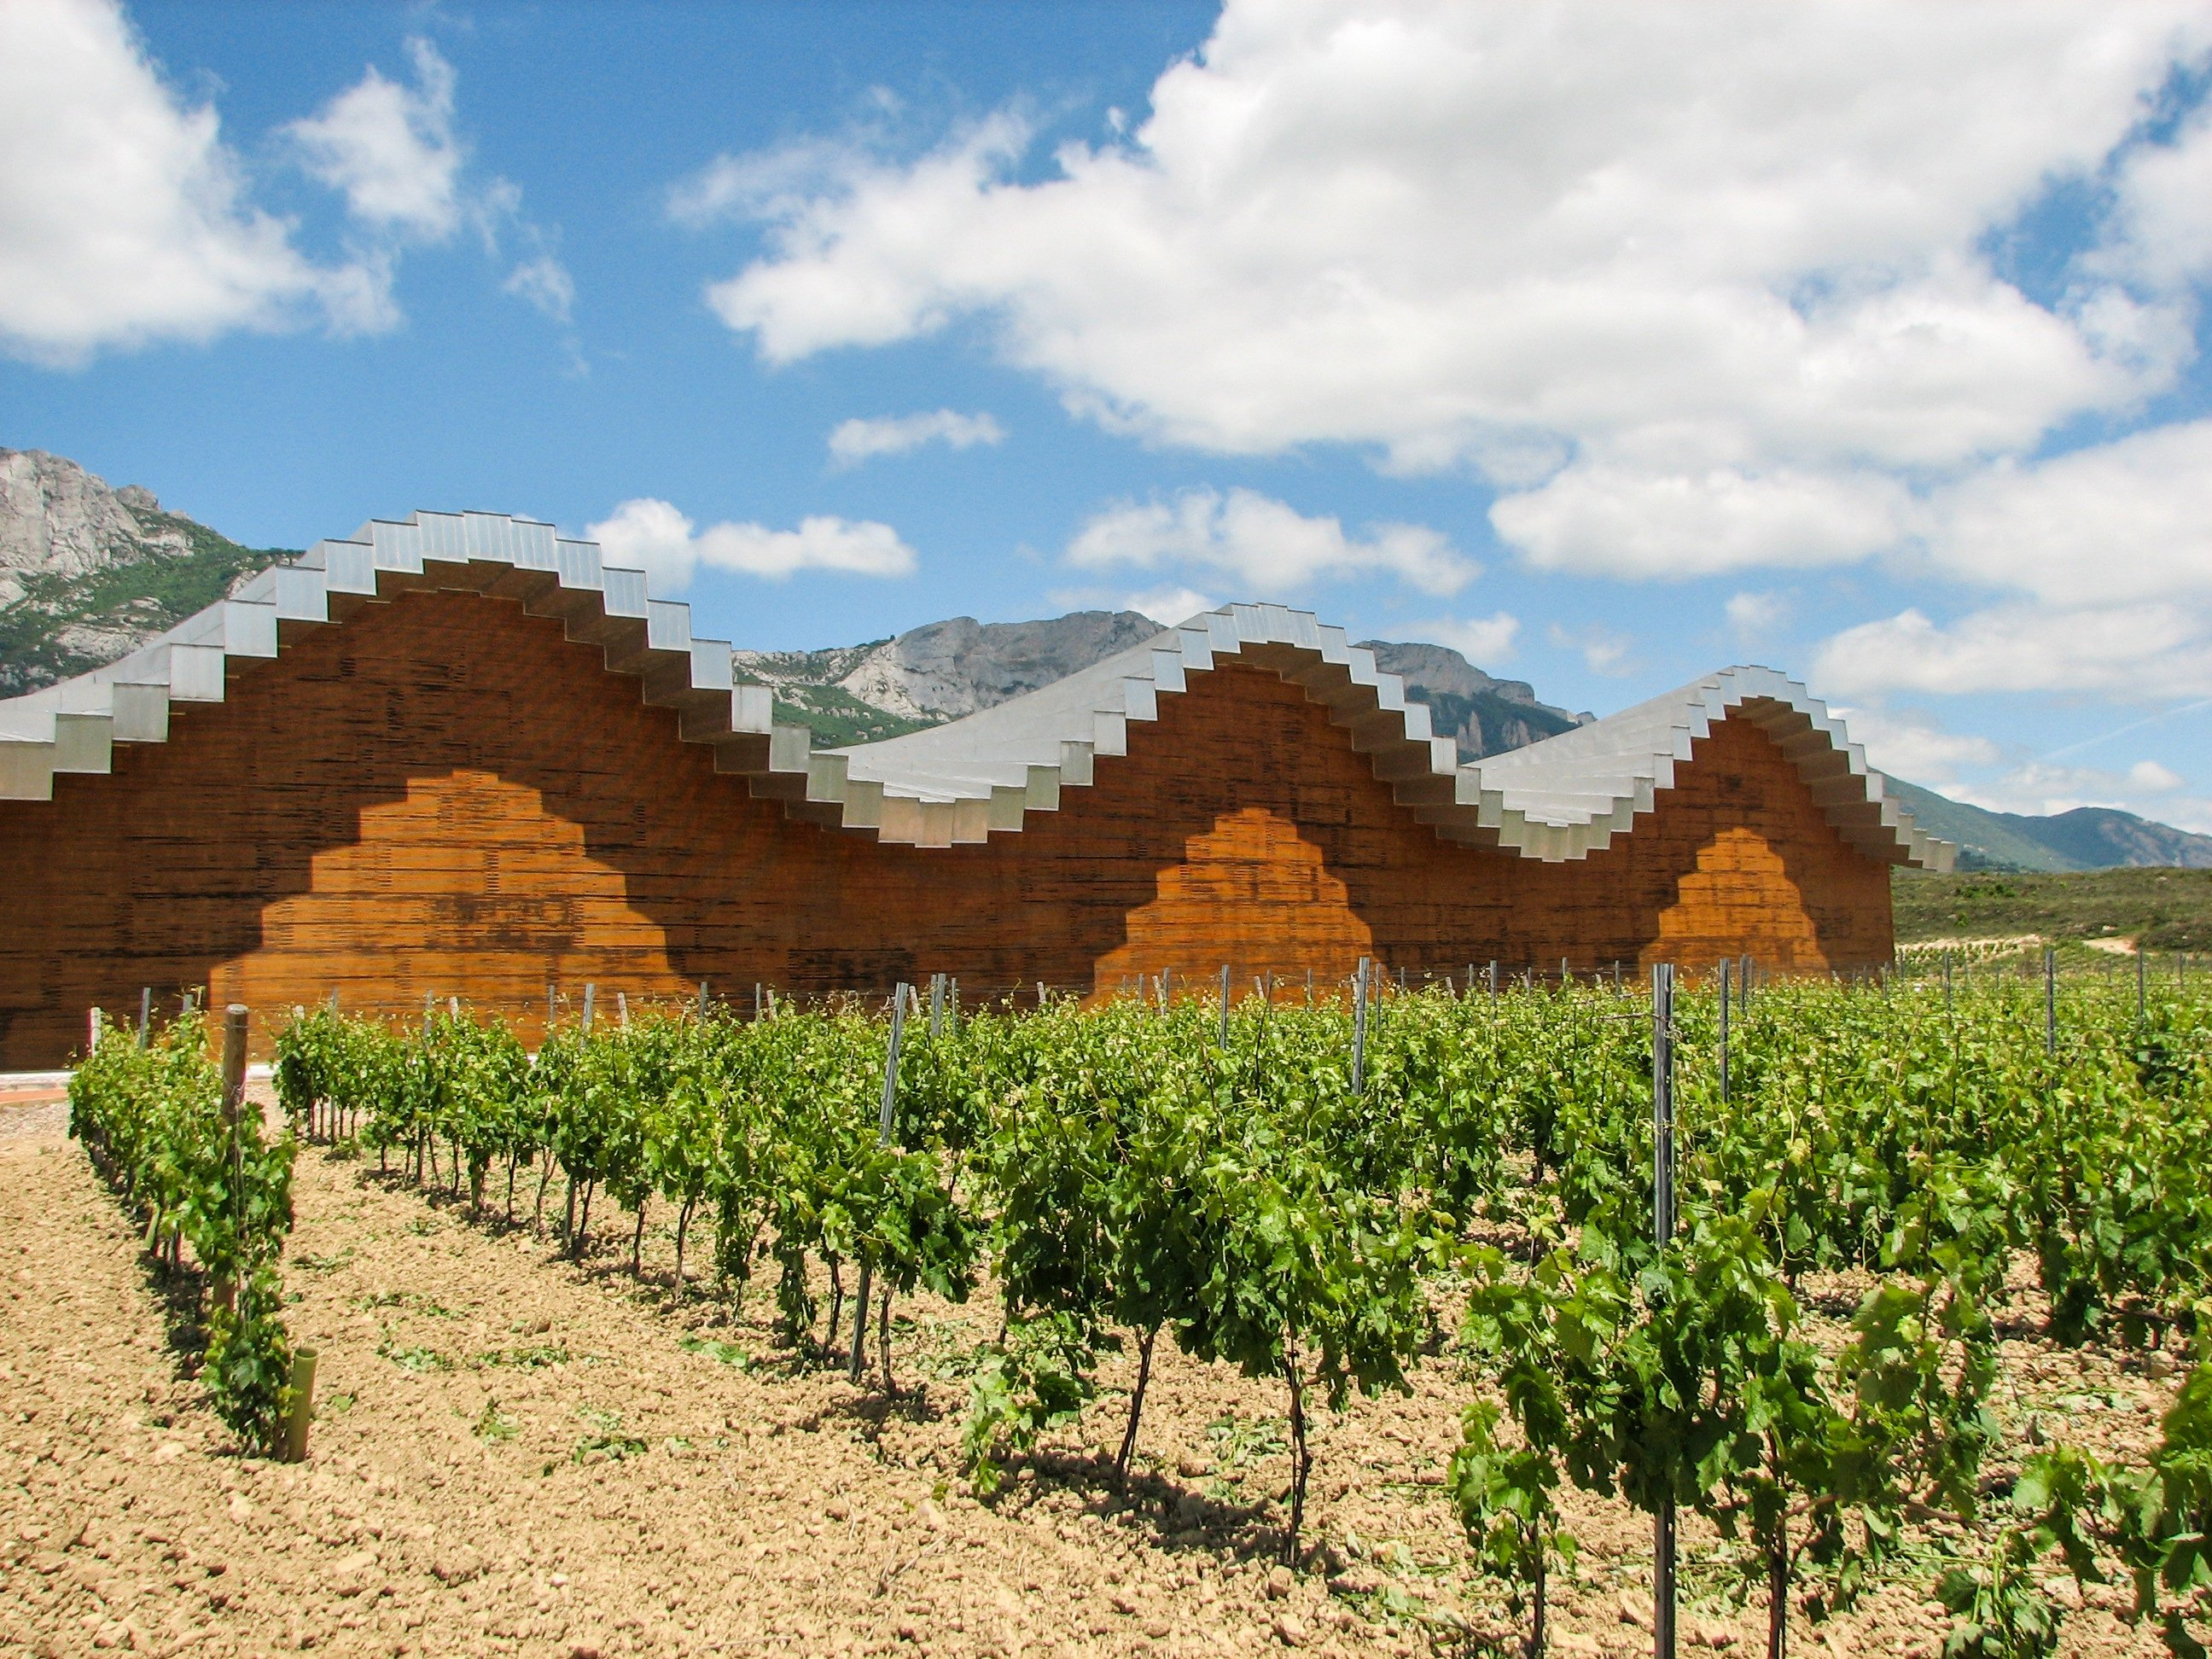 The Ysios winery in the Basque Country's Laguardia was designed by star architect Santiago Calatrava. (DPA Photo)